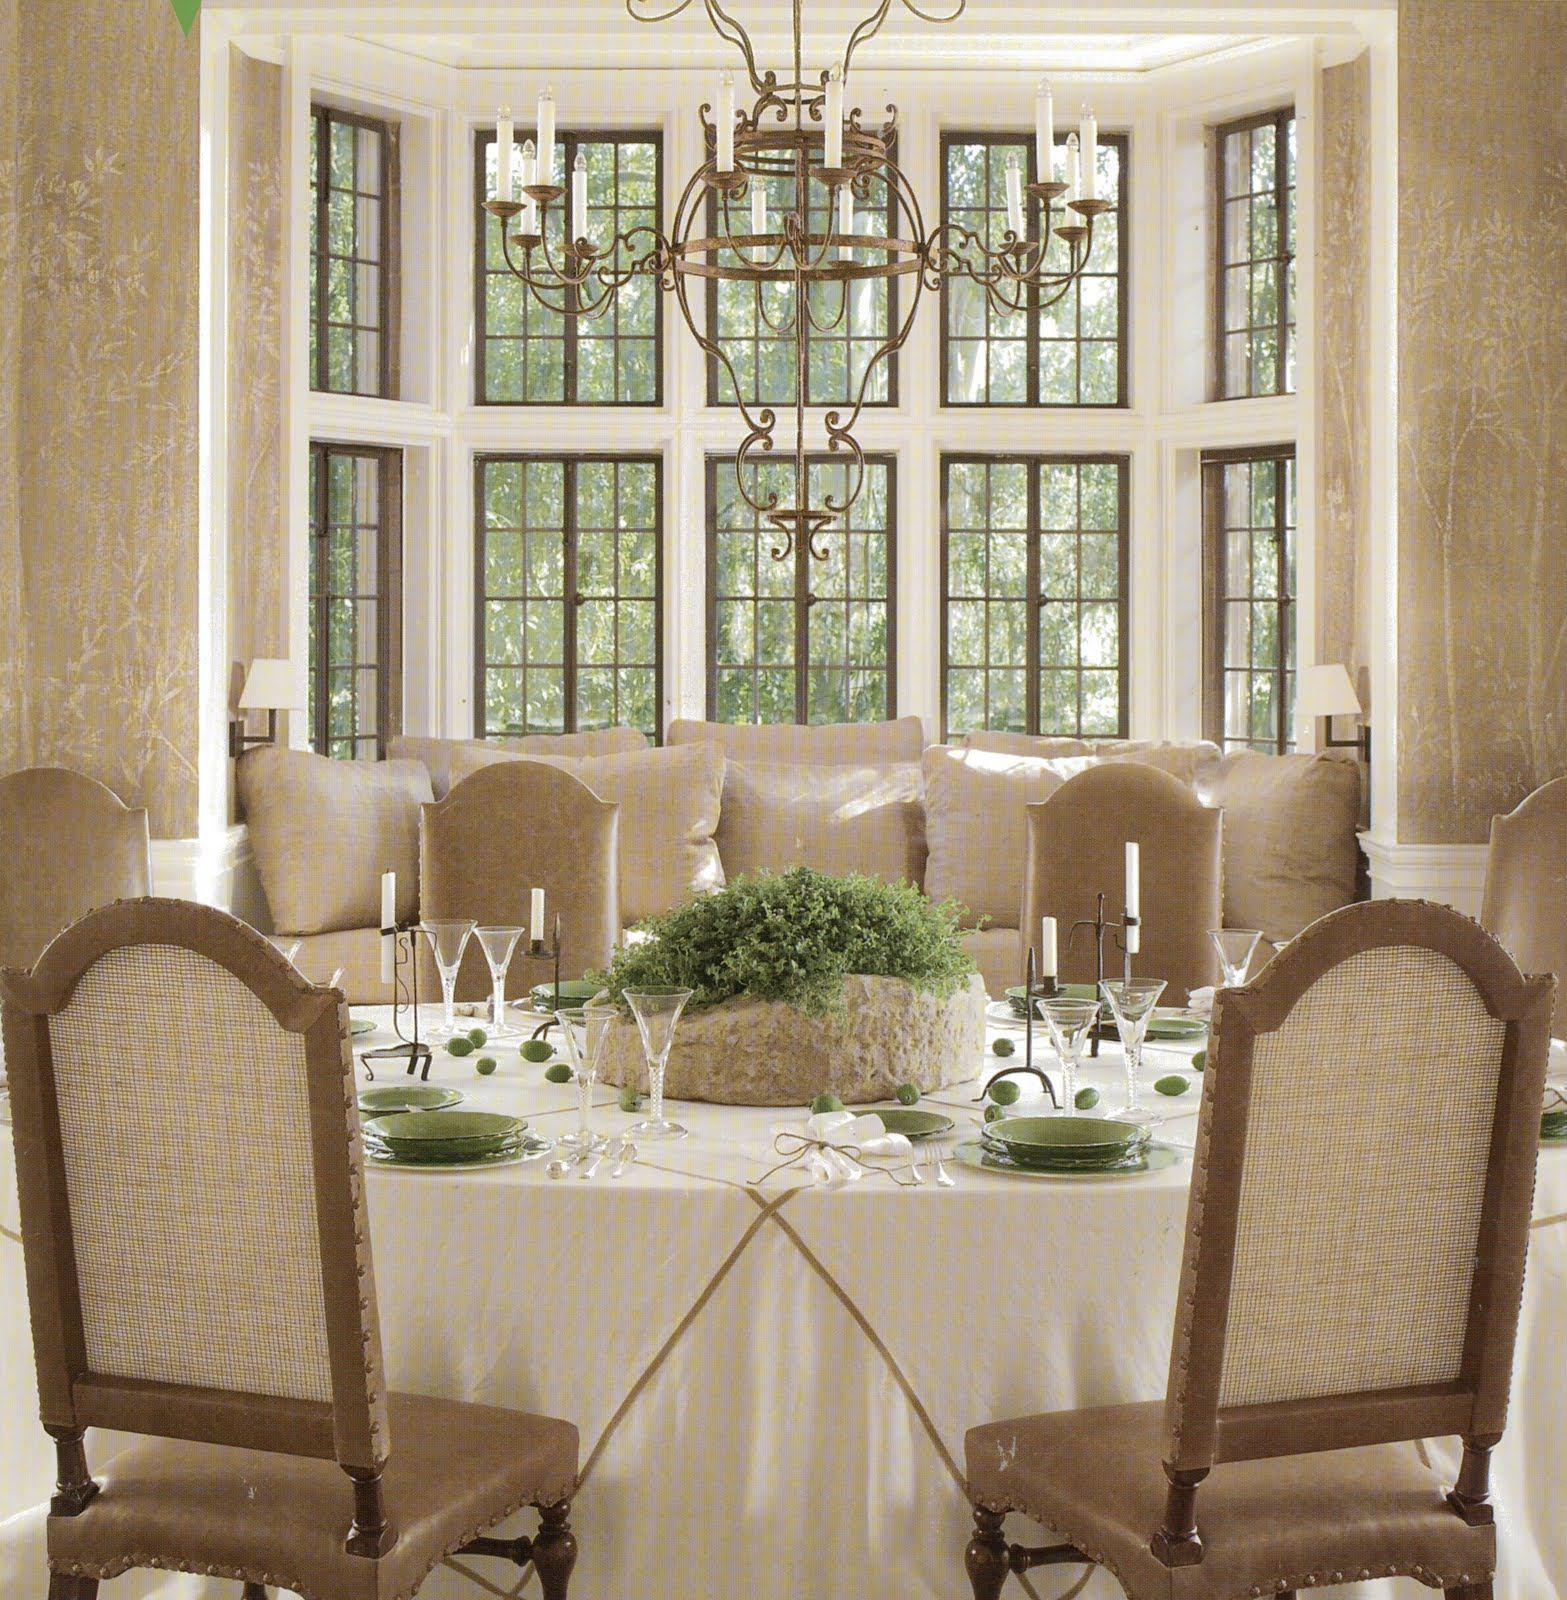 Dining Room Windows Of P S I Love This Ideas For Dining Room